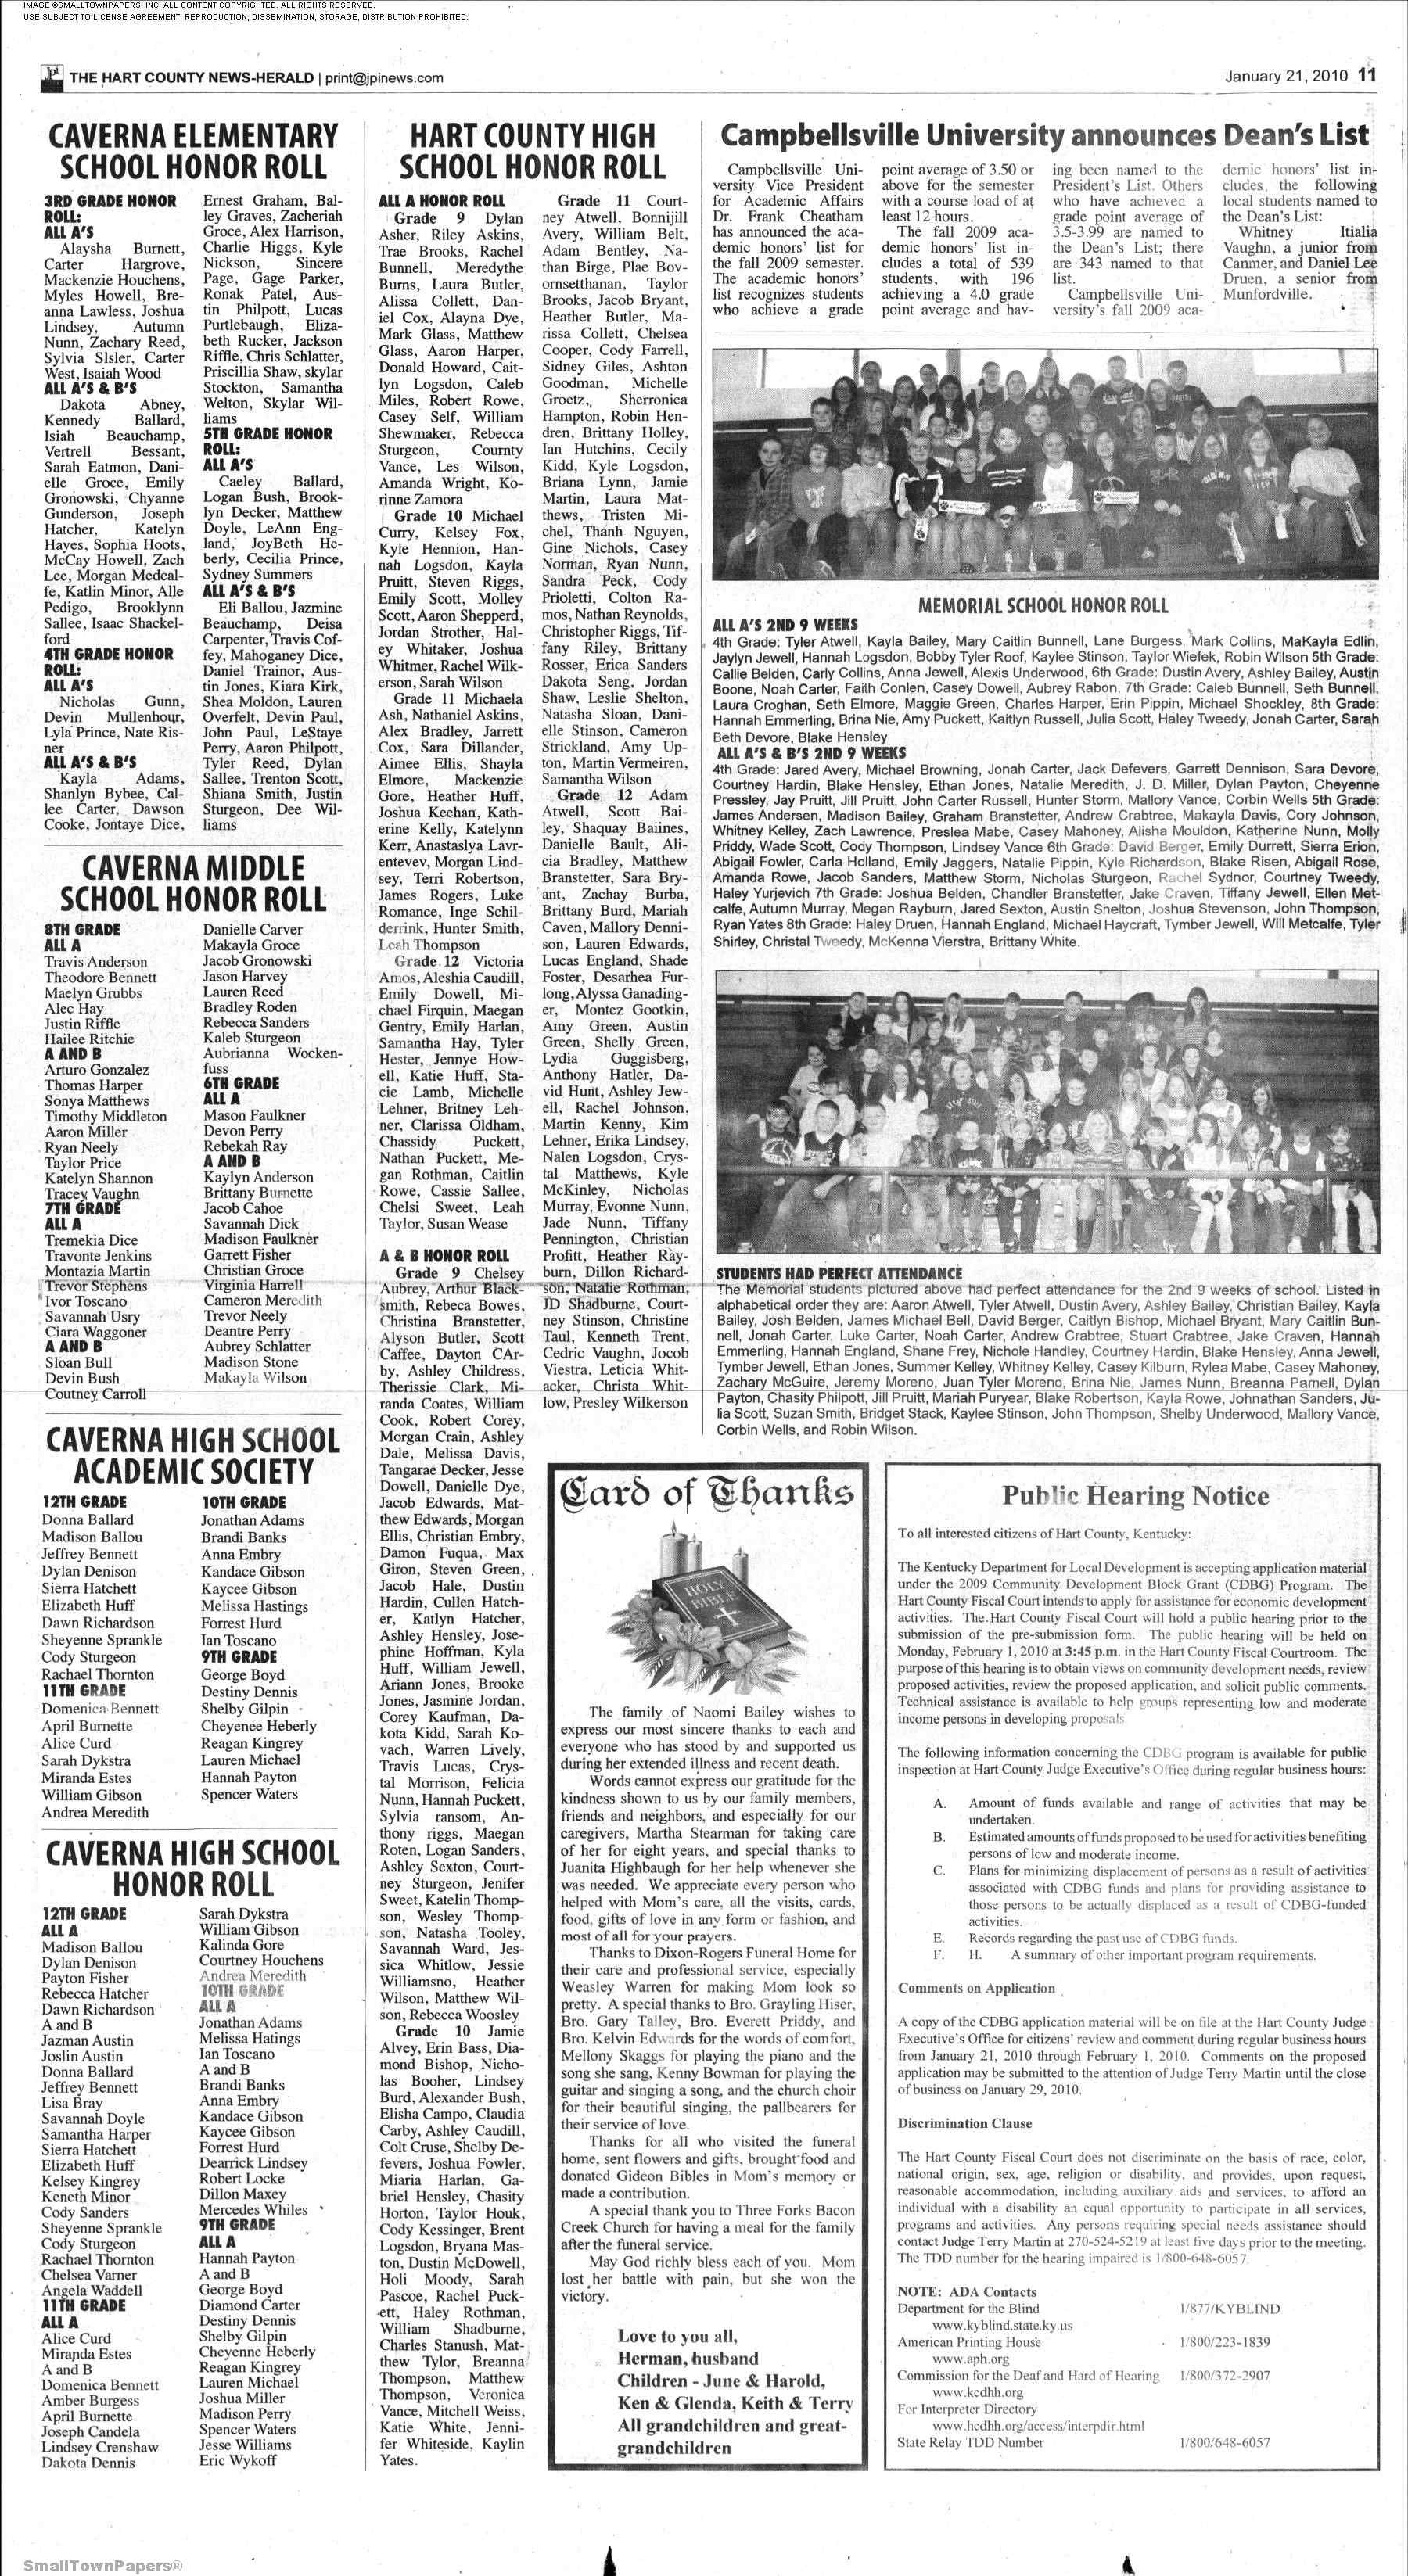 Hart Countys Newspaper News Herald January 21 2010 Page 11